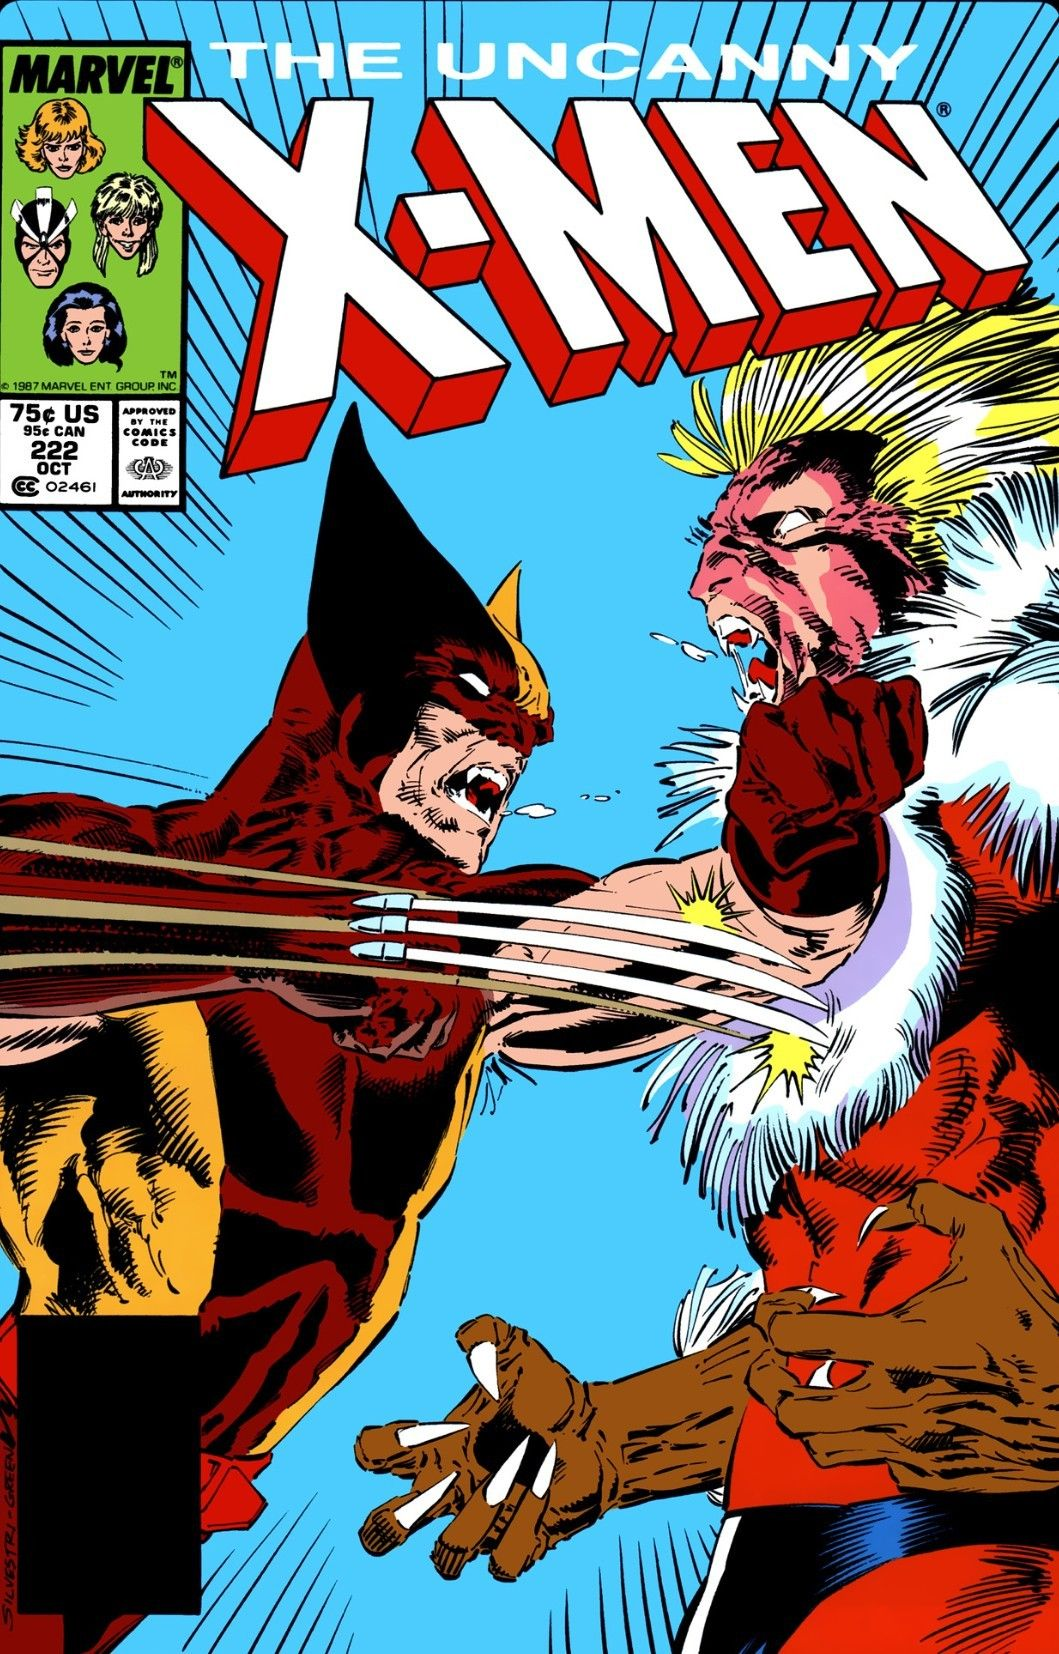 The First Cover Of Wolverine Fighting Sabertooth The X Men From Beginn Wolverine Comic Marvel Comics Covers Marvel Comic Books